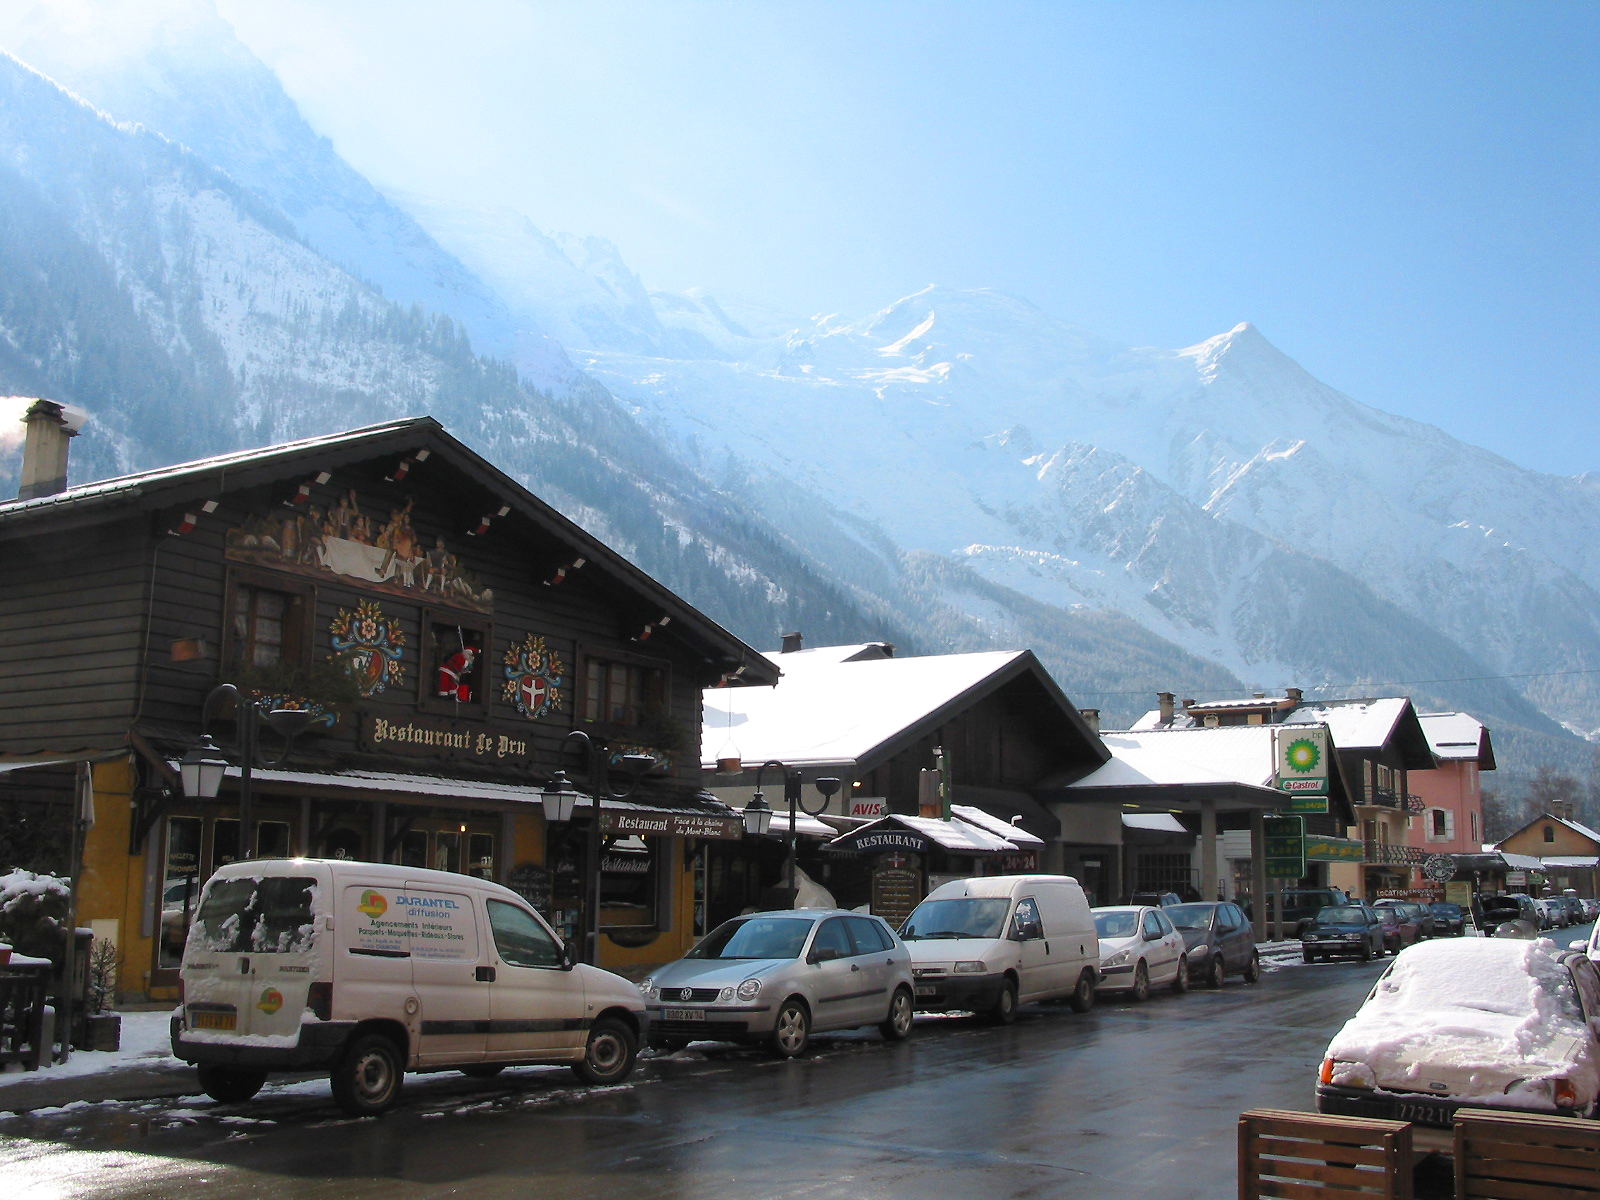 Mont Blanc image from wikimedia